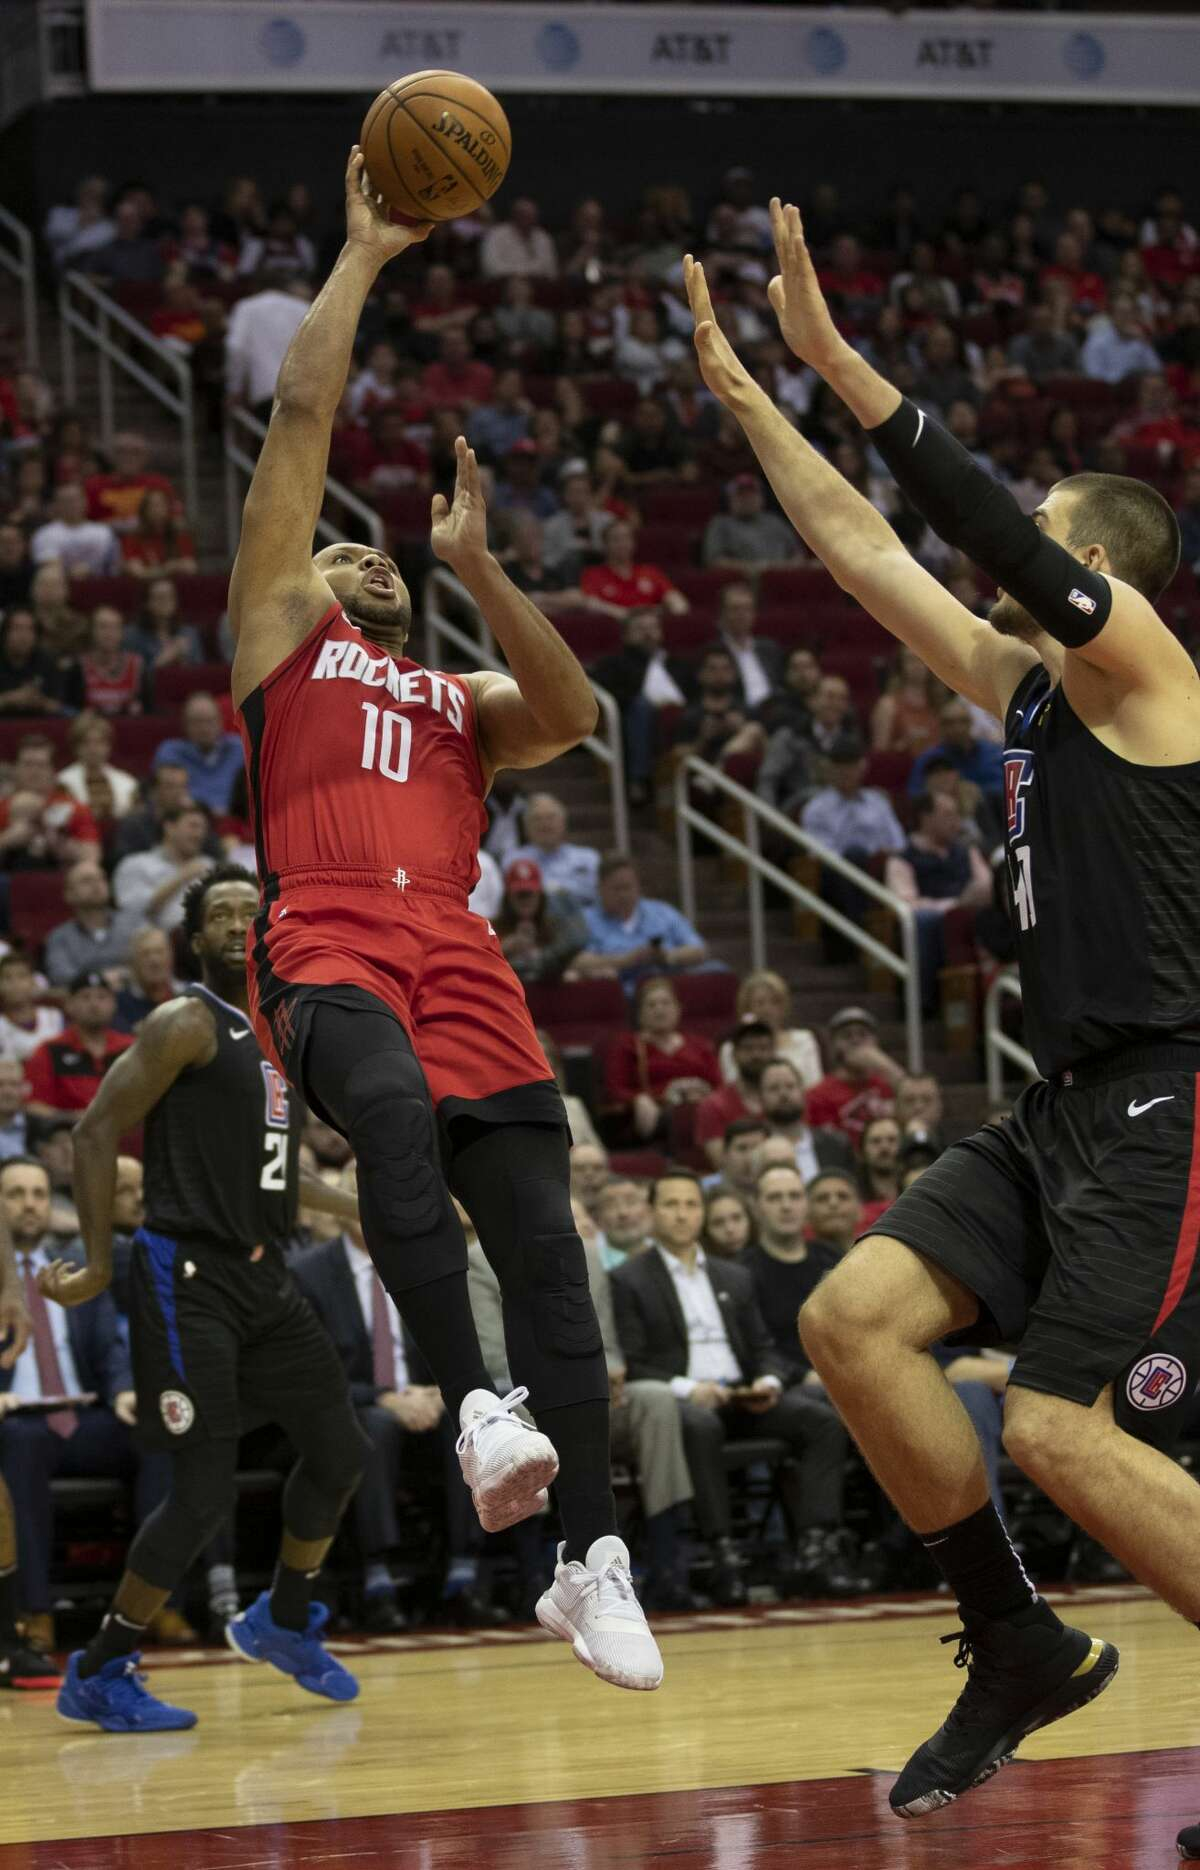 Houston Rockets guard Eric Gordon (10) throws the ball scoring against LA Clippers center Ivica Zubac (40) at the Toyota Center on Thursday, March 5, 2020, in Houston.